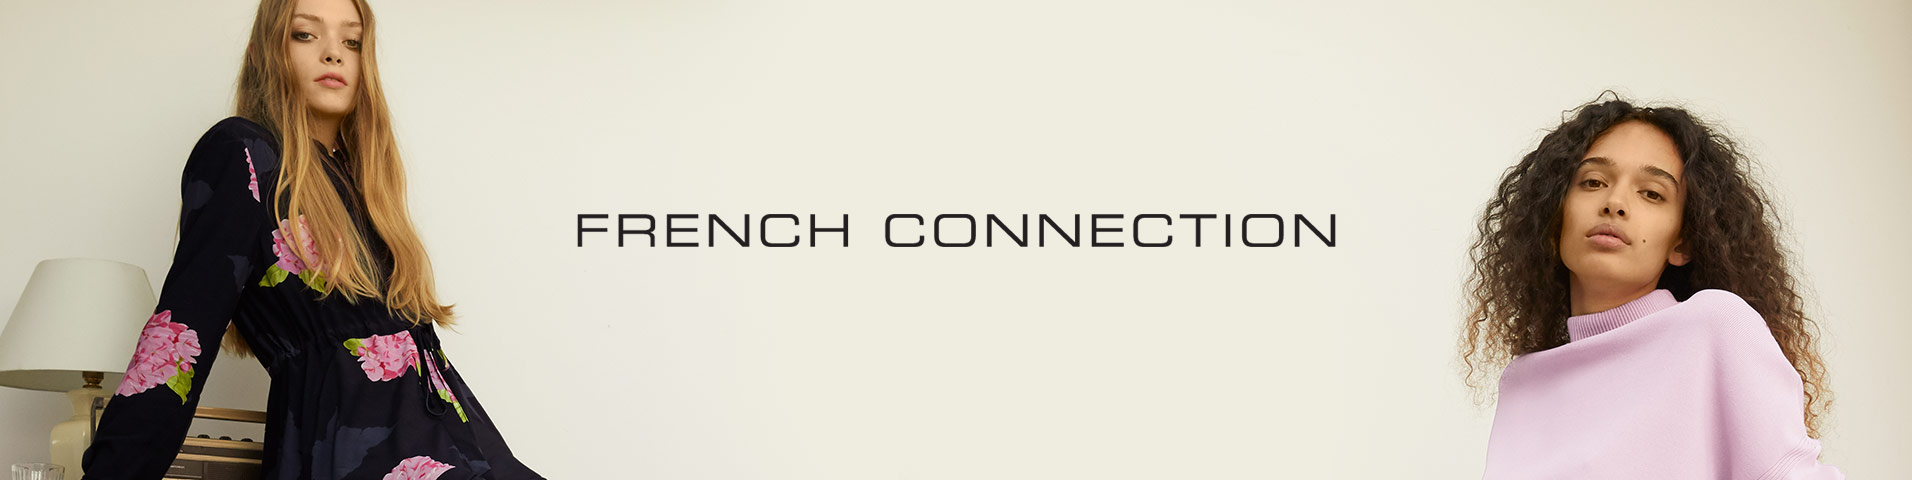 e9083e2e4c7 French Connection online shop | Gratis verzending | ZALANDO